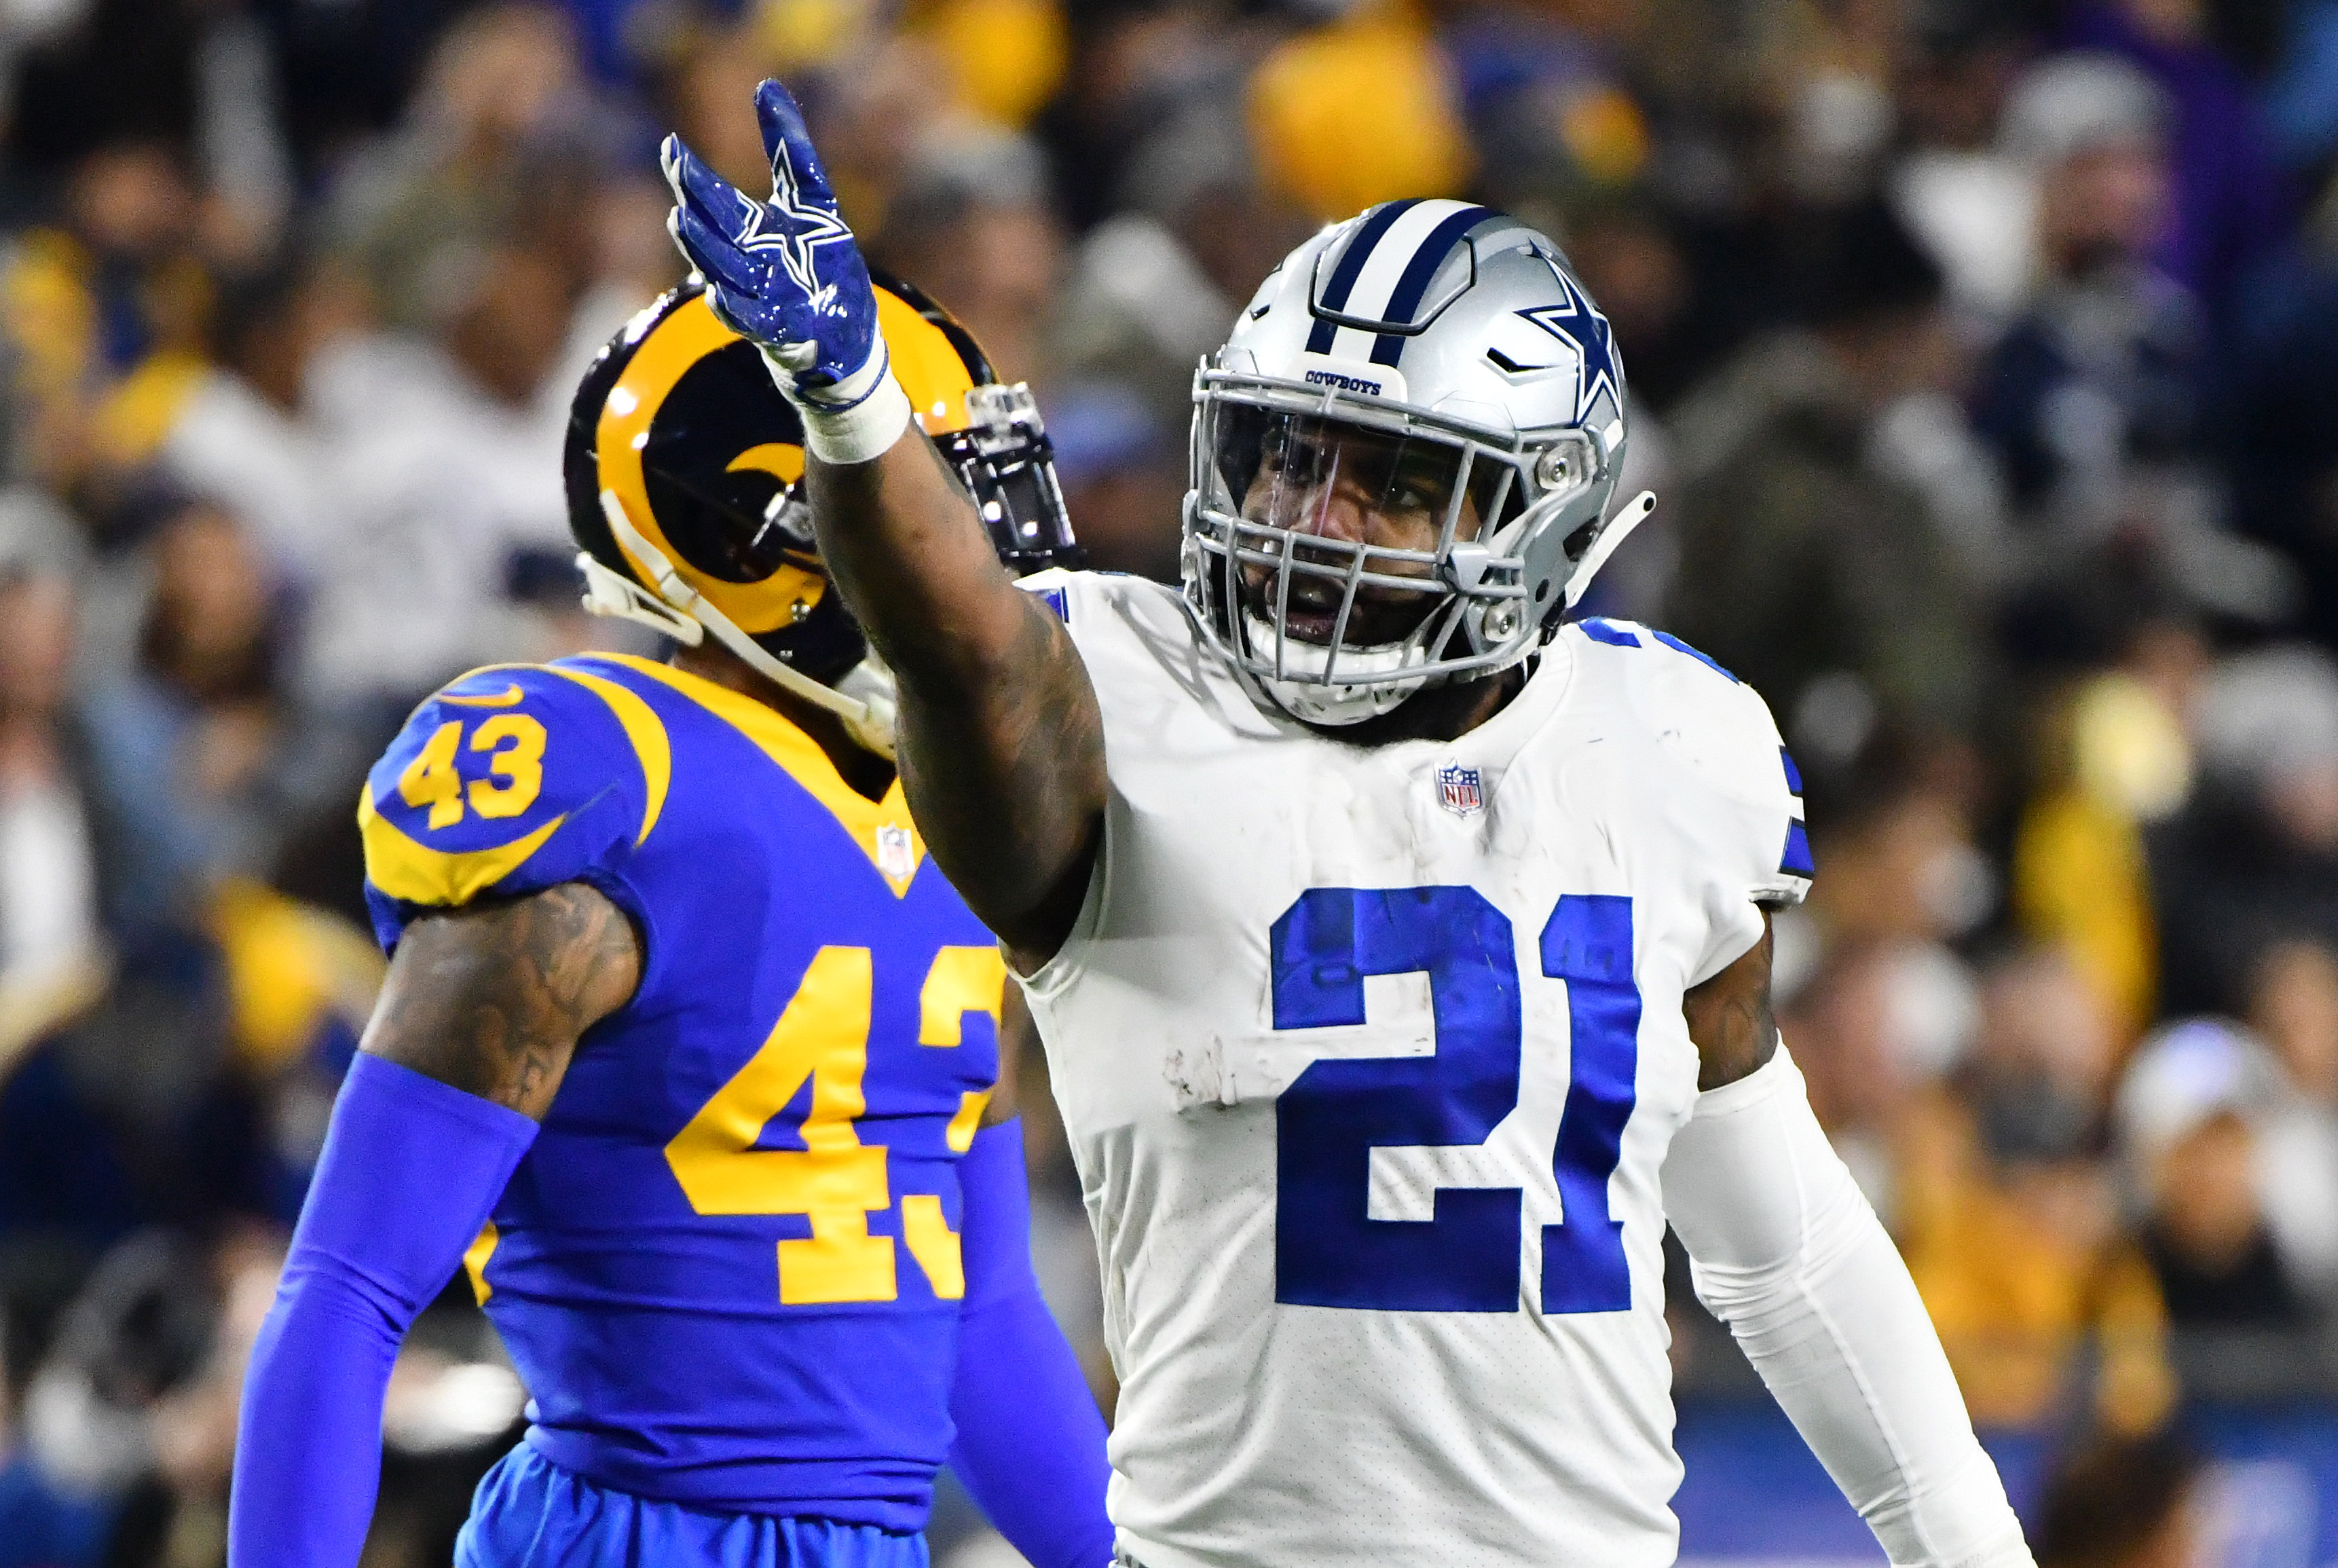 Running back and wide receiver NFL odds for 2019 season